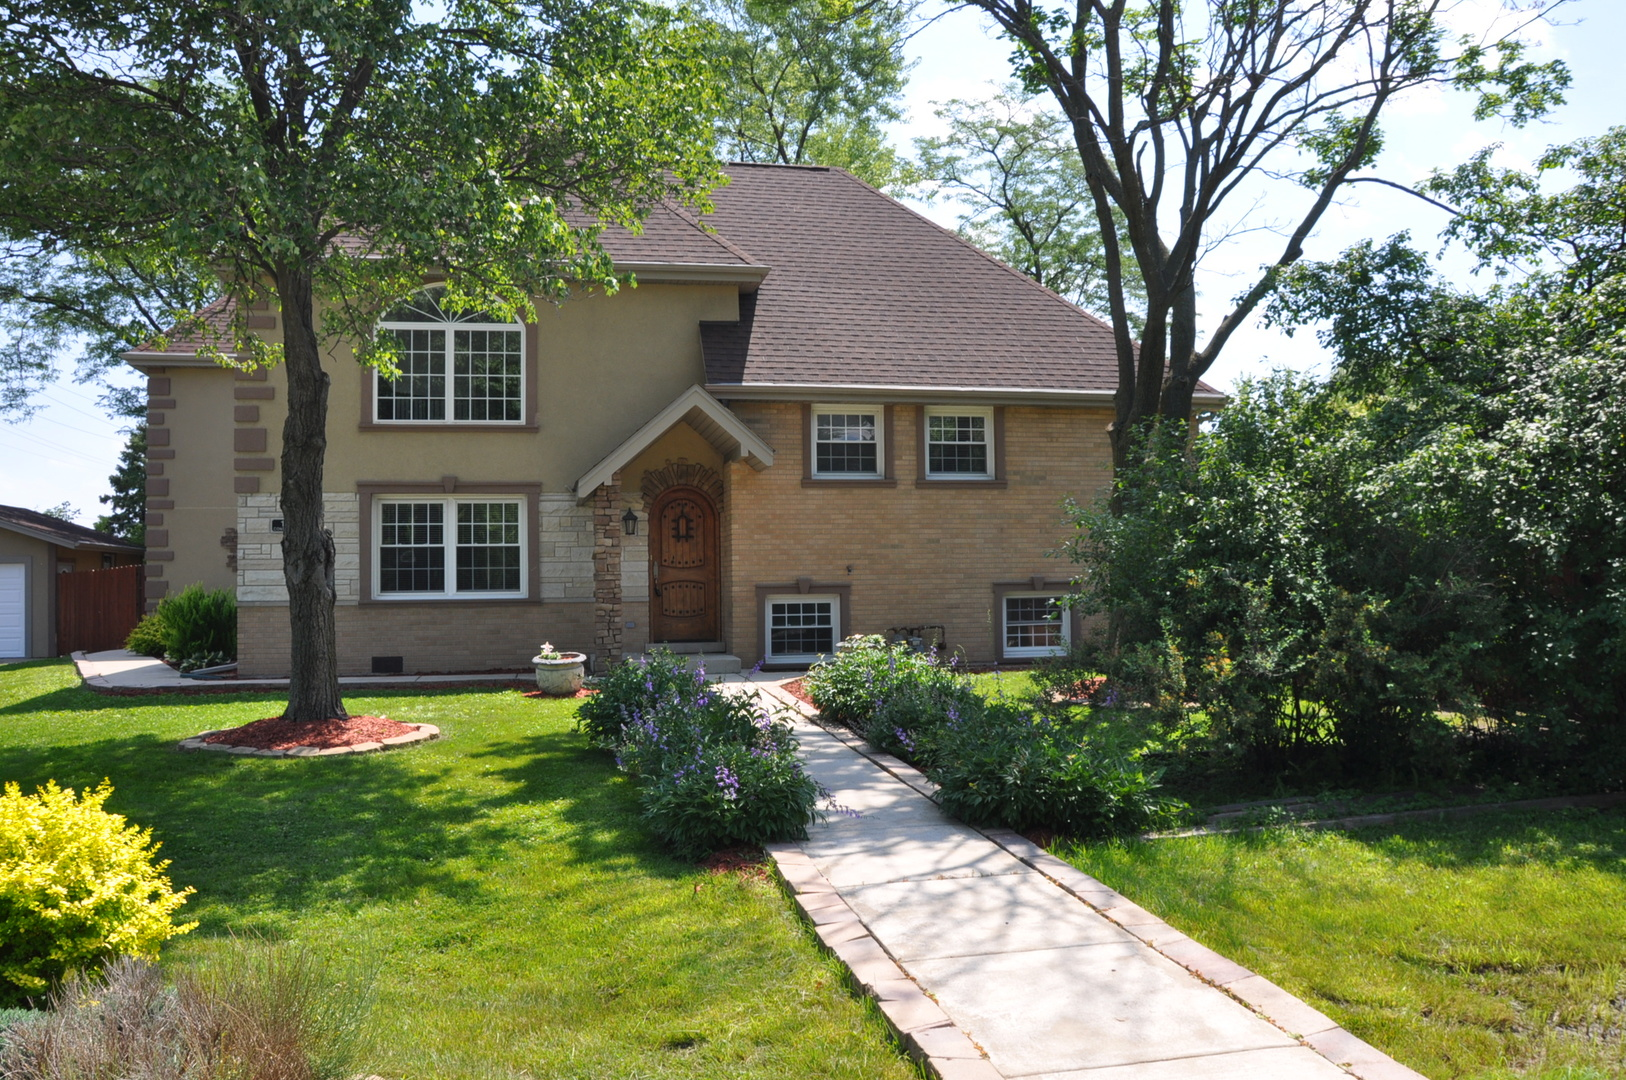 15 CONSTANCE Lane, Northbrook in Cook County, IL 60062 Home for Sale